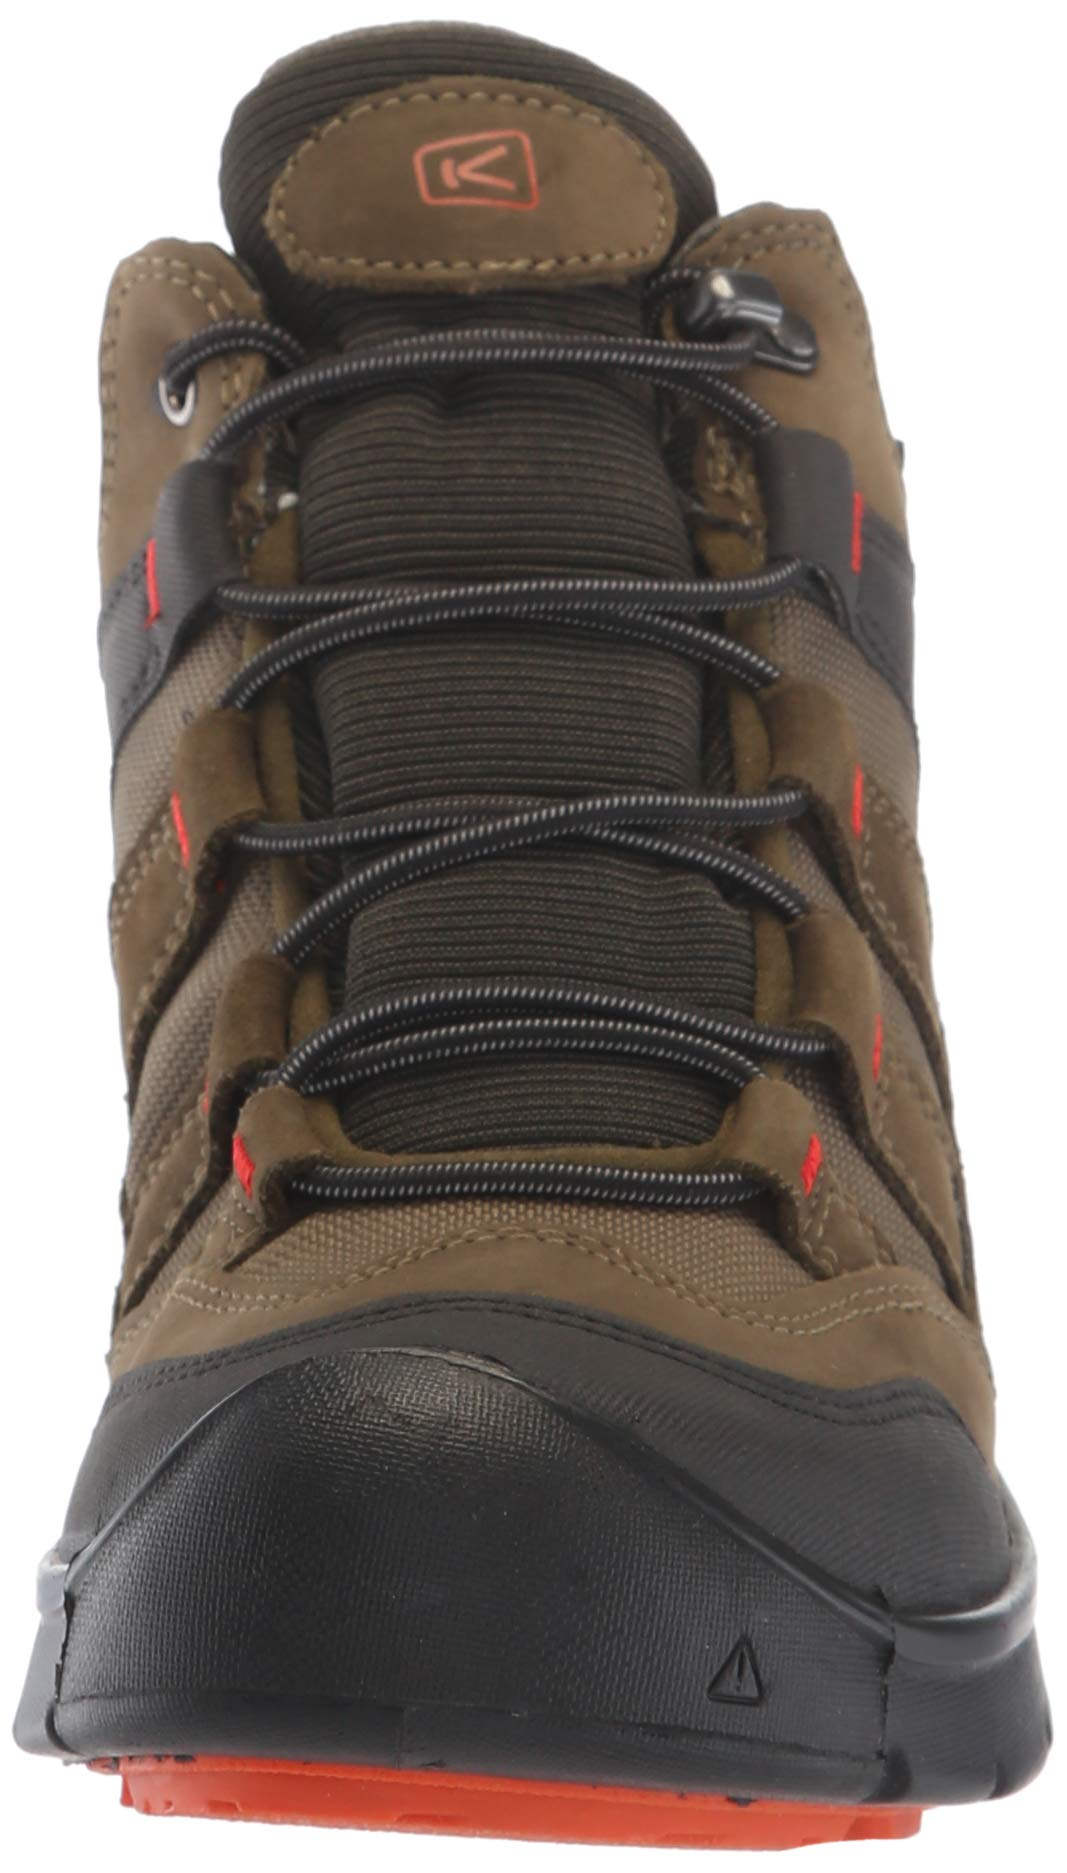 KEEN Unisex HIKEPORT MID WP Hiking Boot, Martini Olive/pureed Pumpkin, 12 M US Little Kid by KEEN (Image #4)